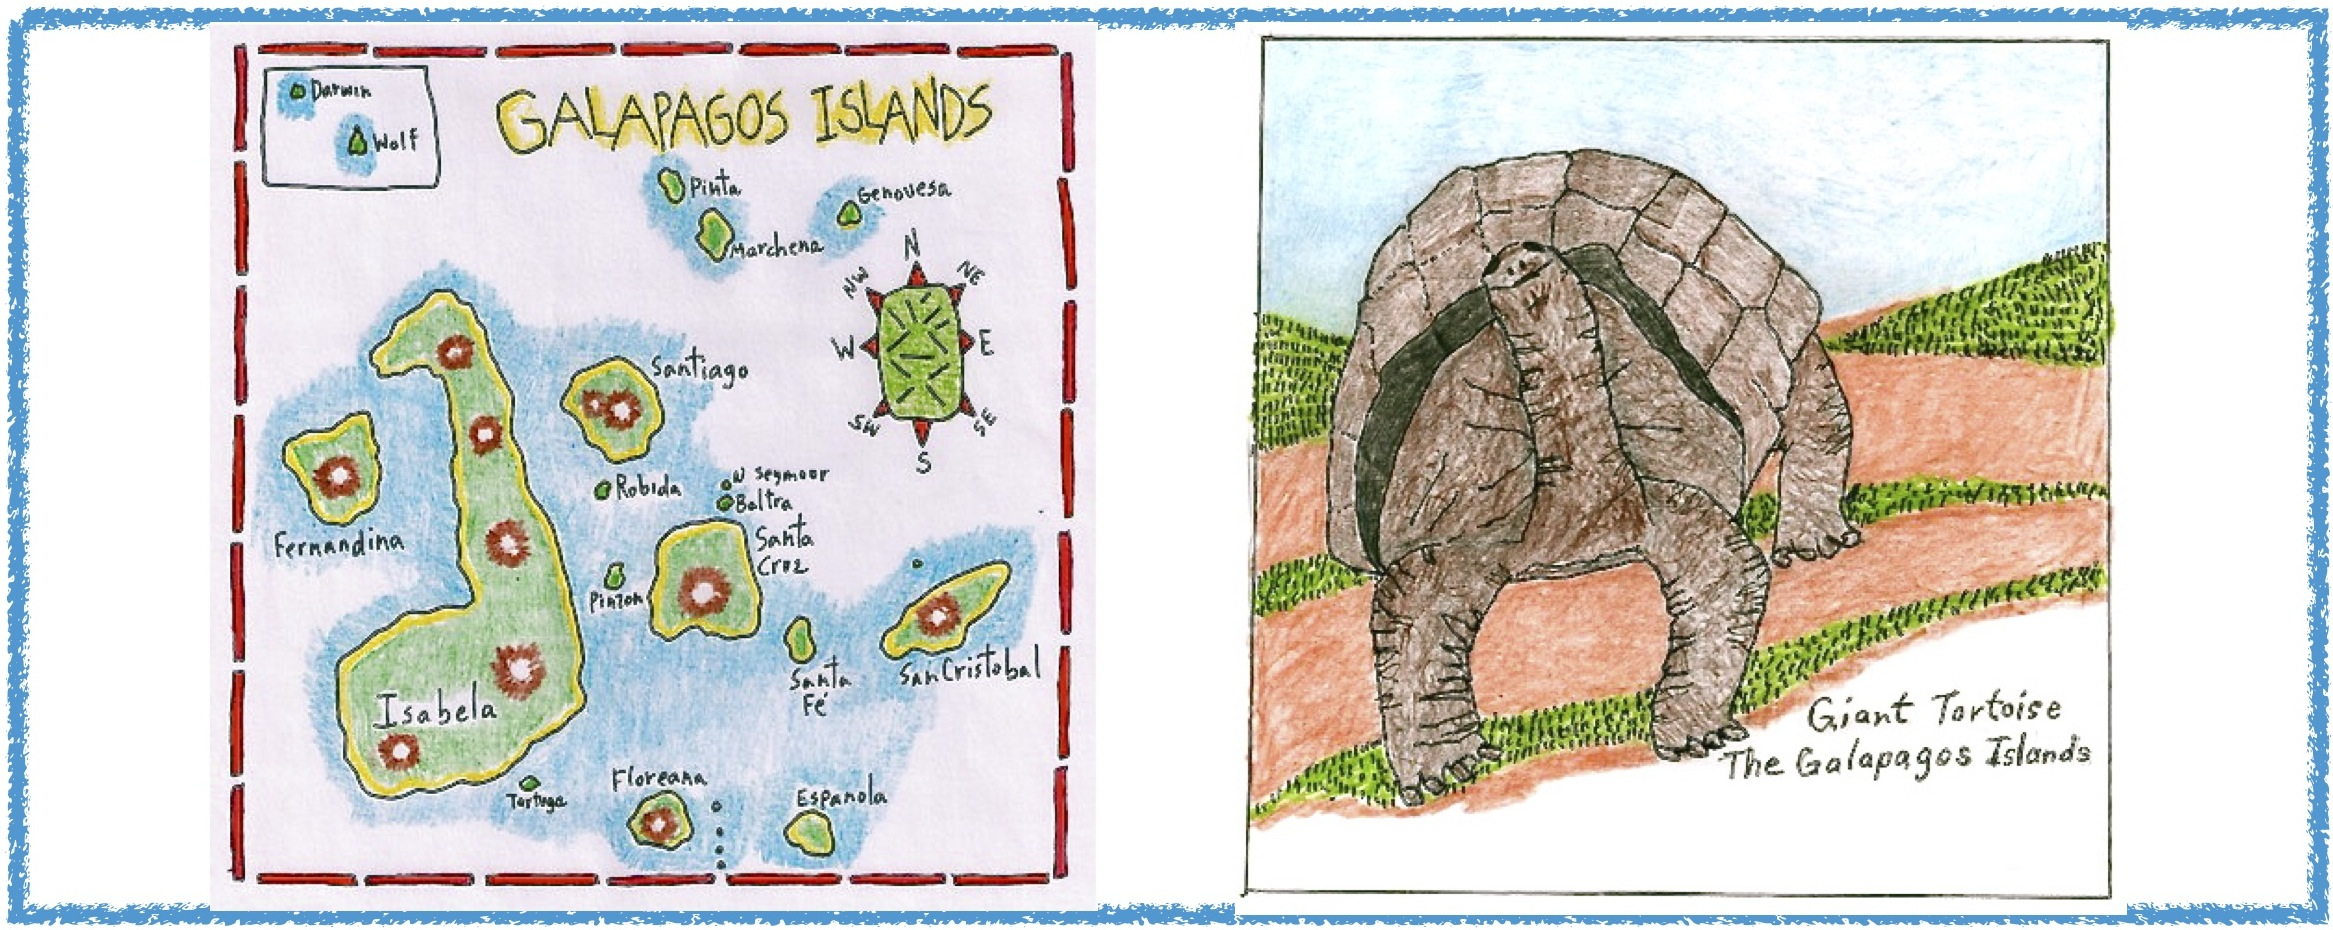 Galapagos New Species Of Giant Tortoise